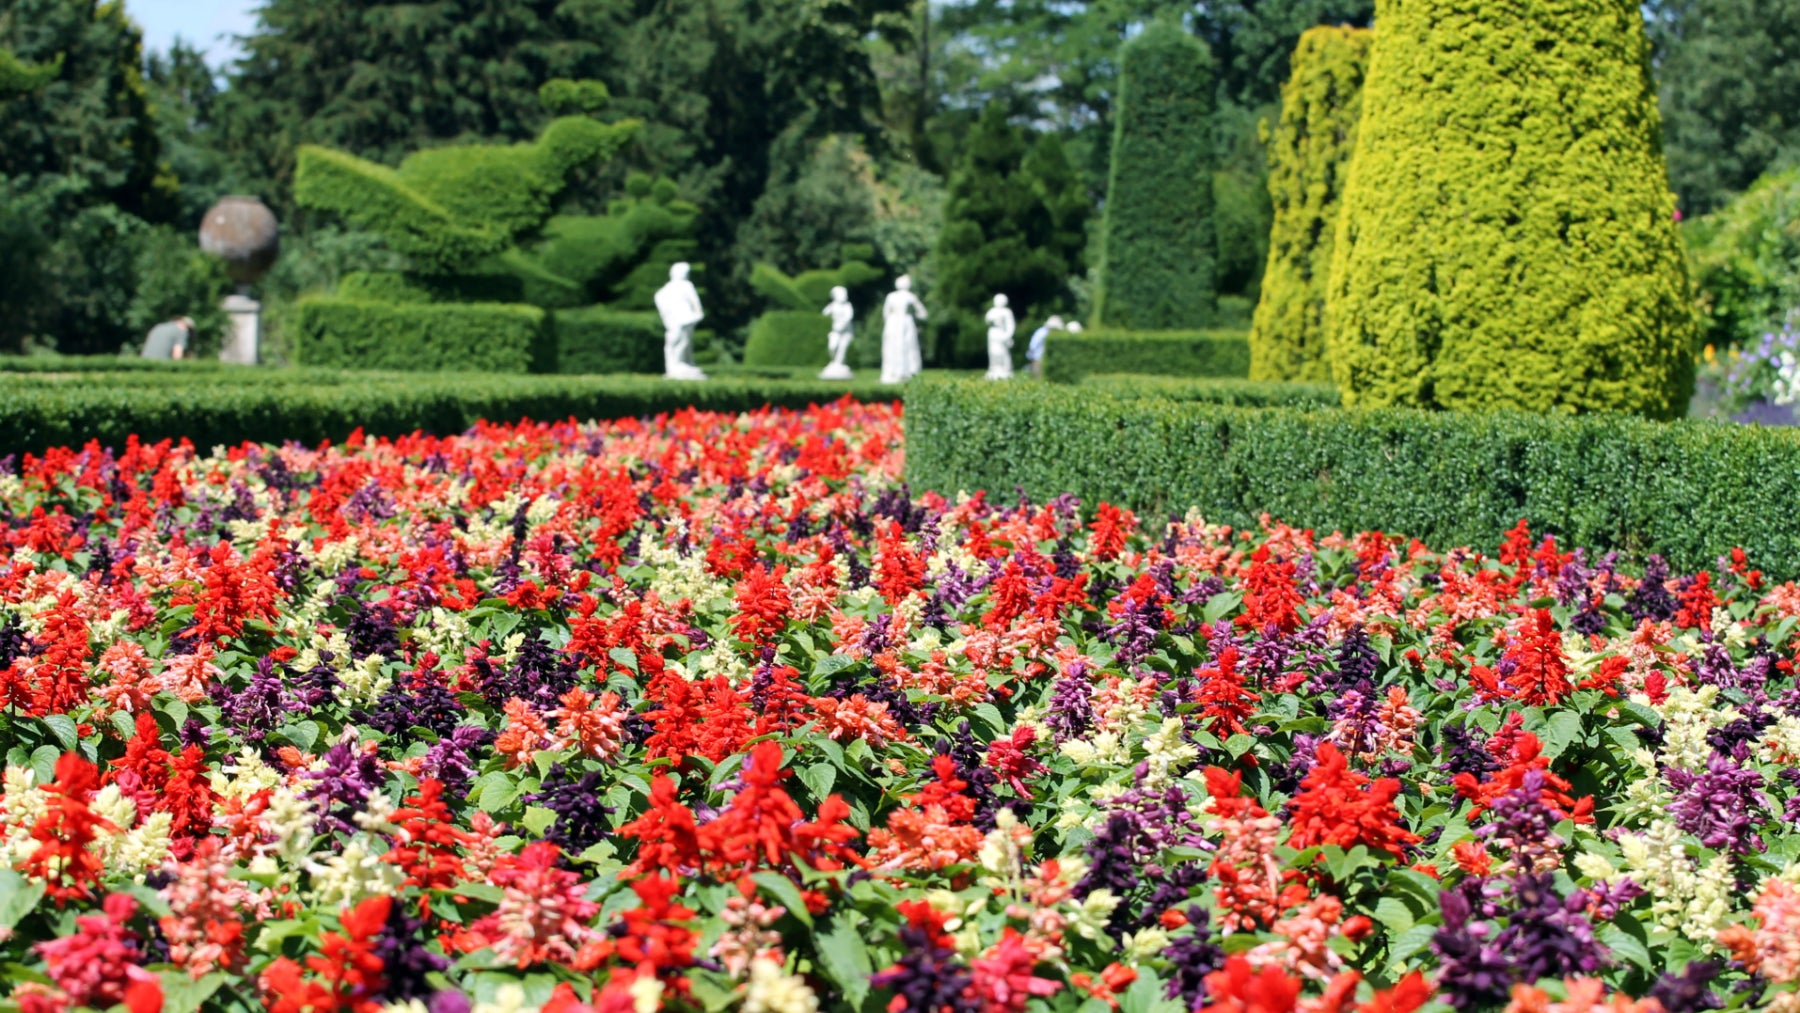 Cliveden's summer Long garden